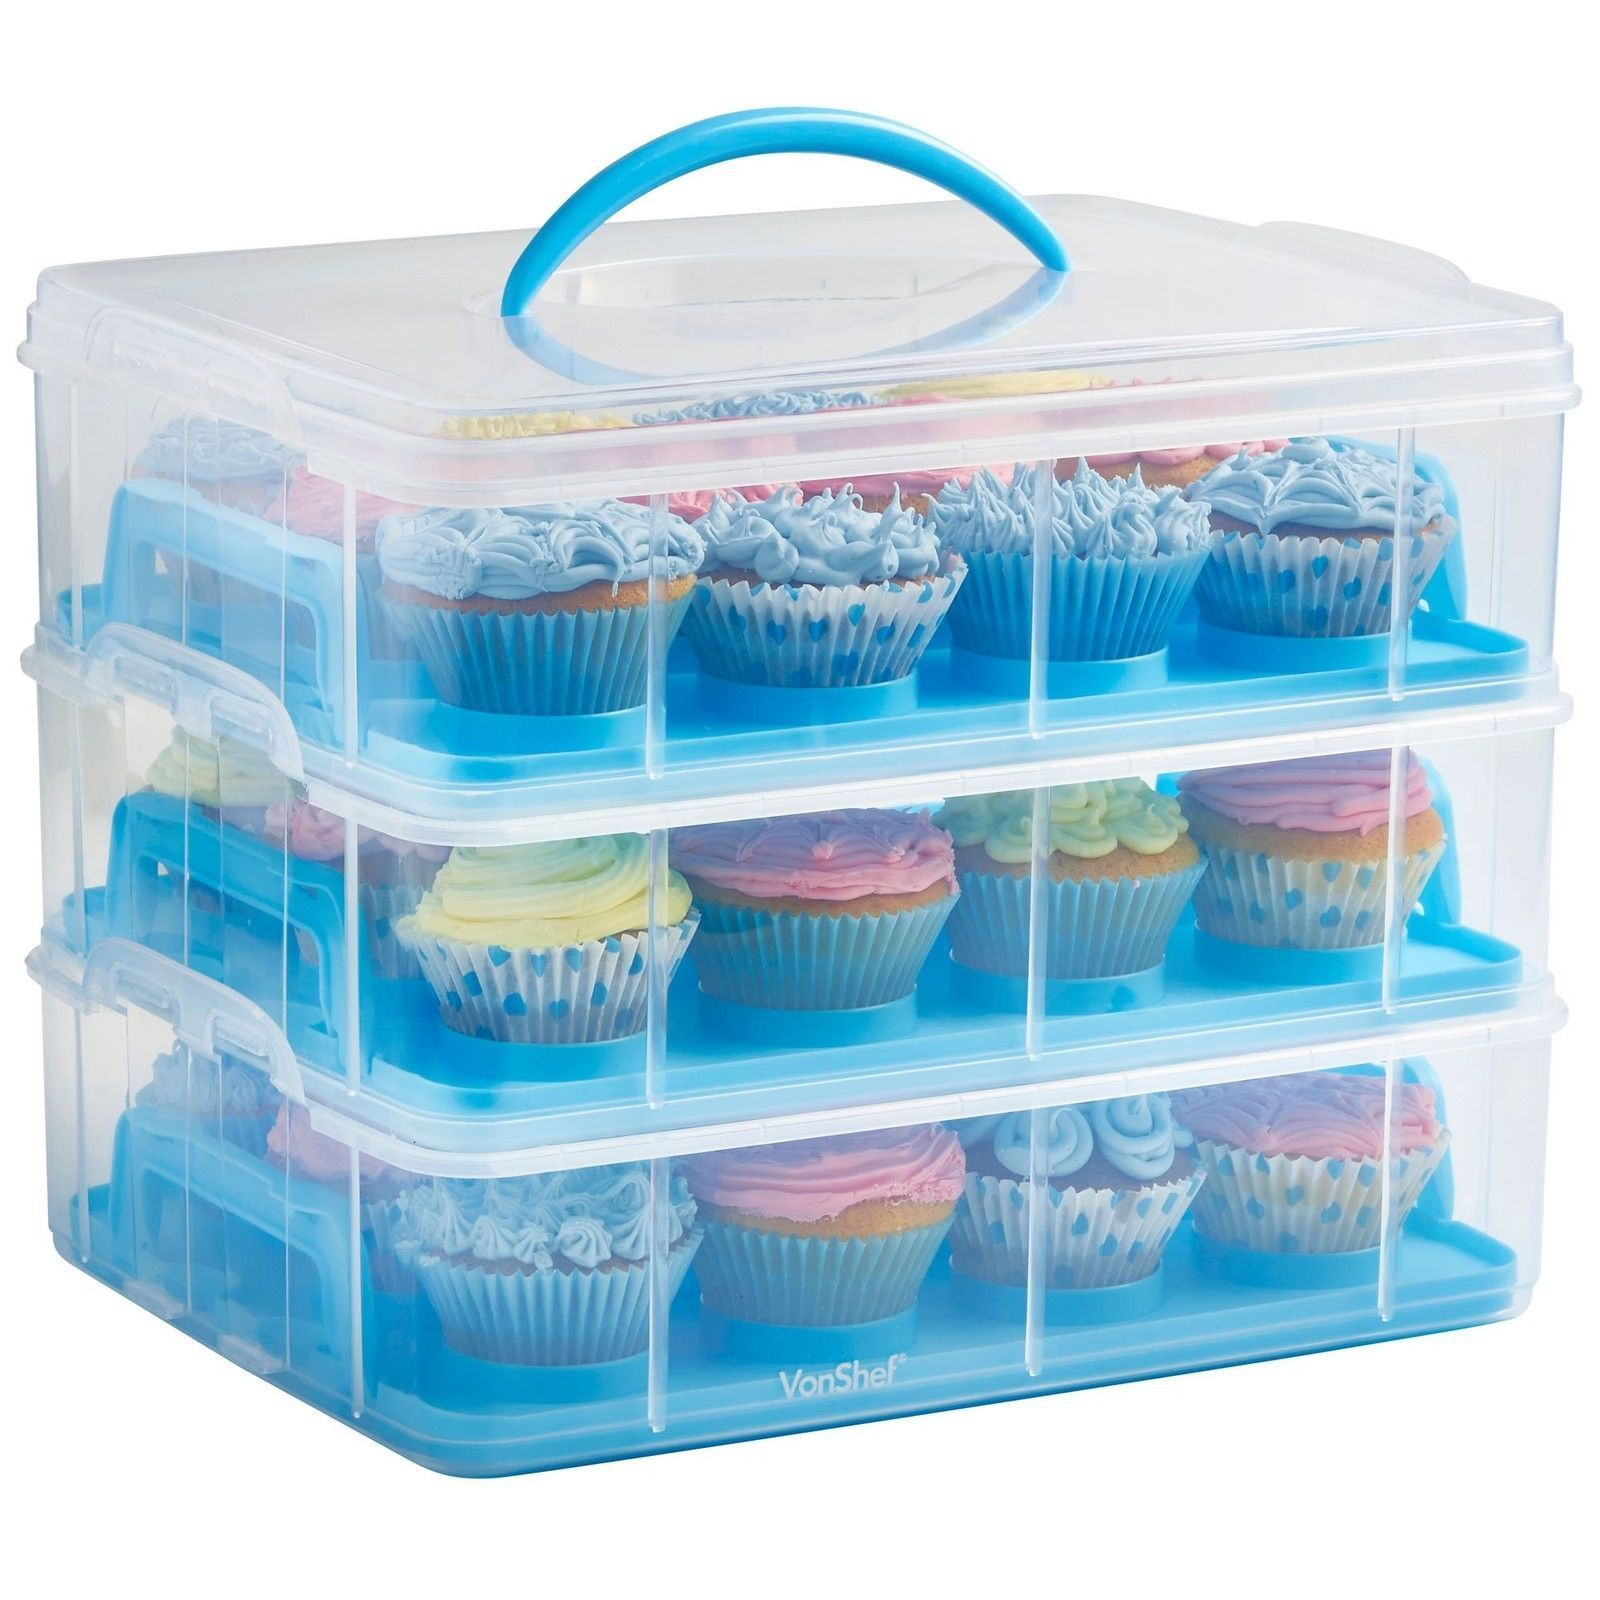 36 Cupcake Carrier Vonshef Snap And Stack Blue 3 Tier Cupcake Holder & Cake Carrier